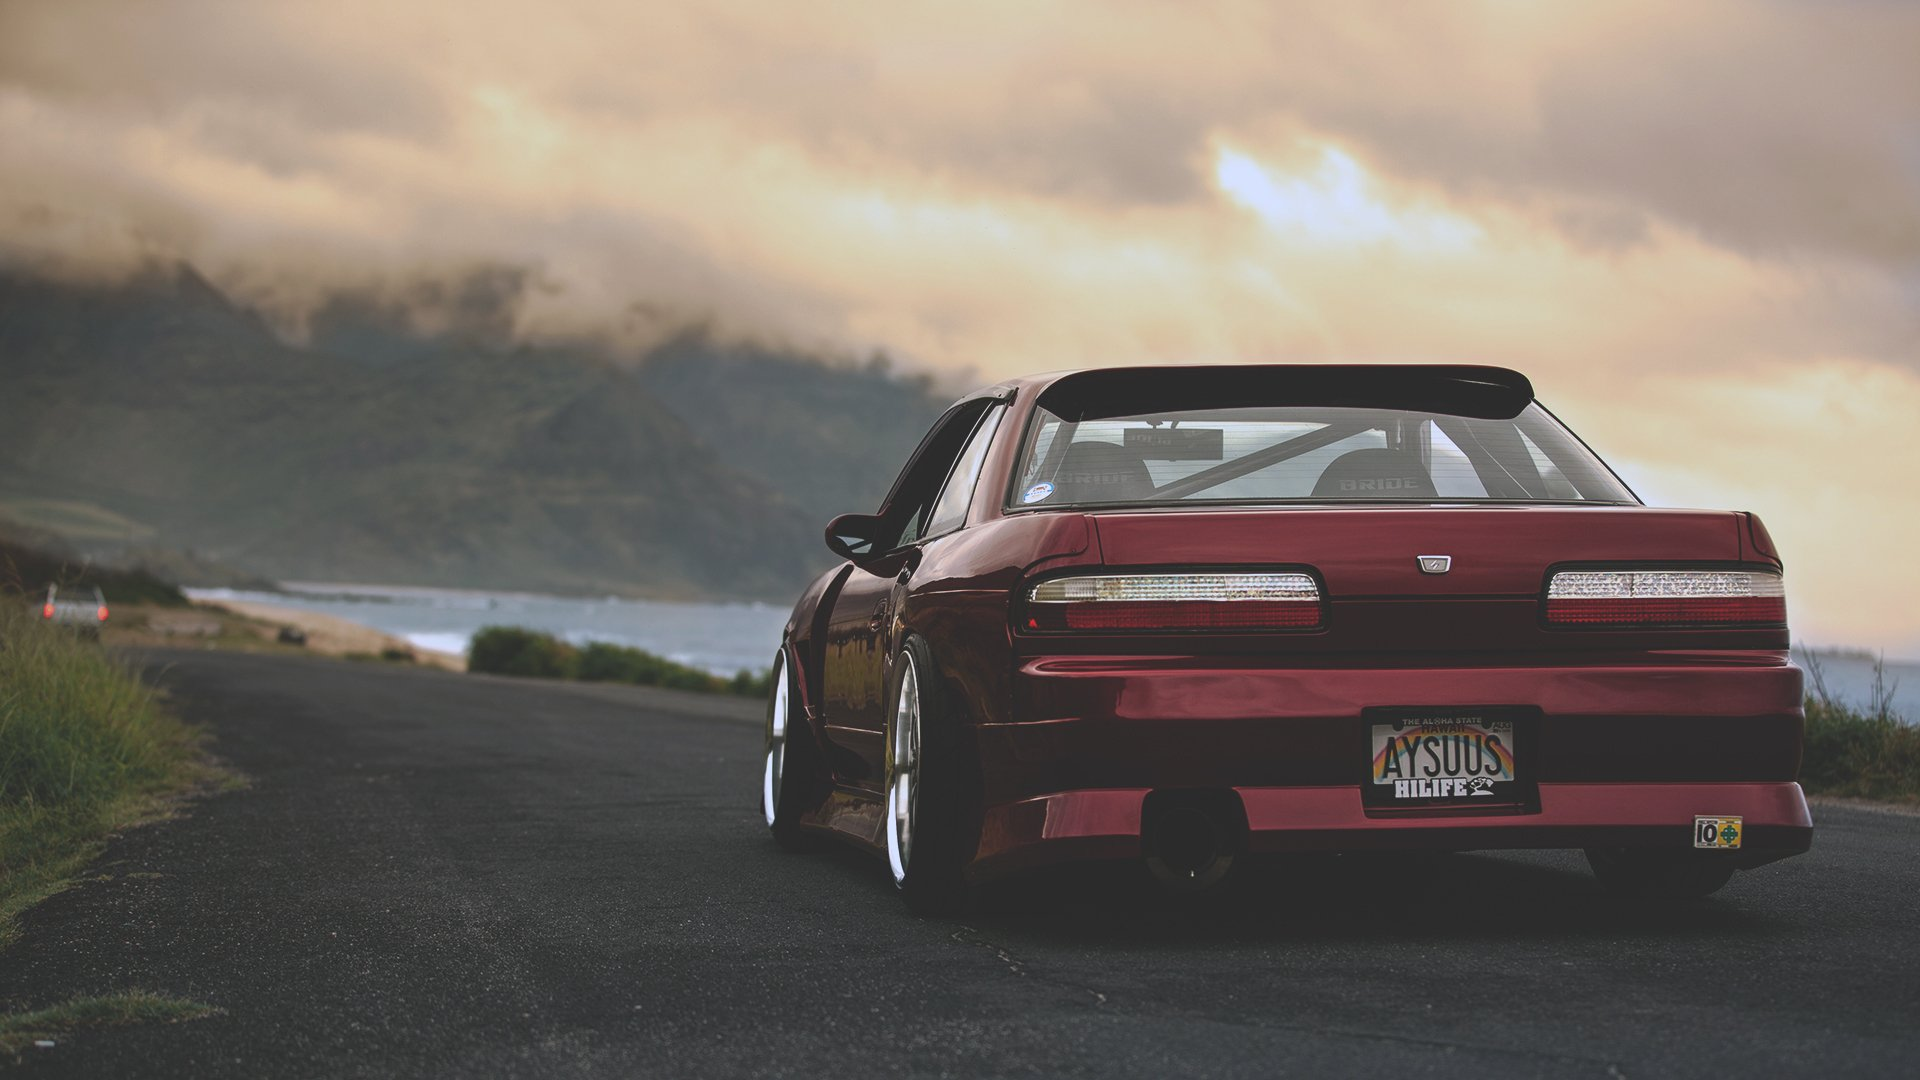 1920x1080 - Nissan Silvia S14 Wallpapers 21